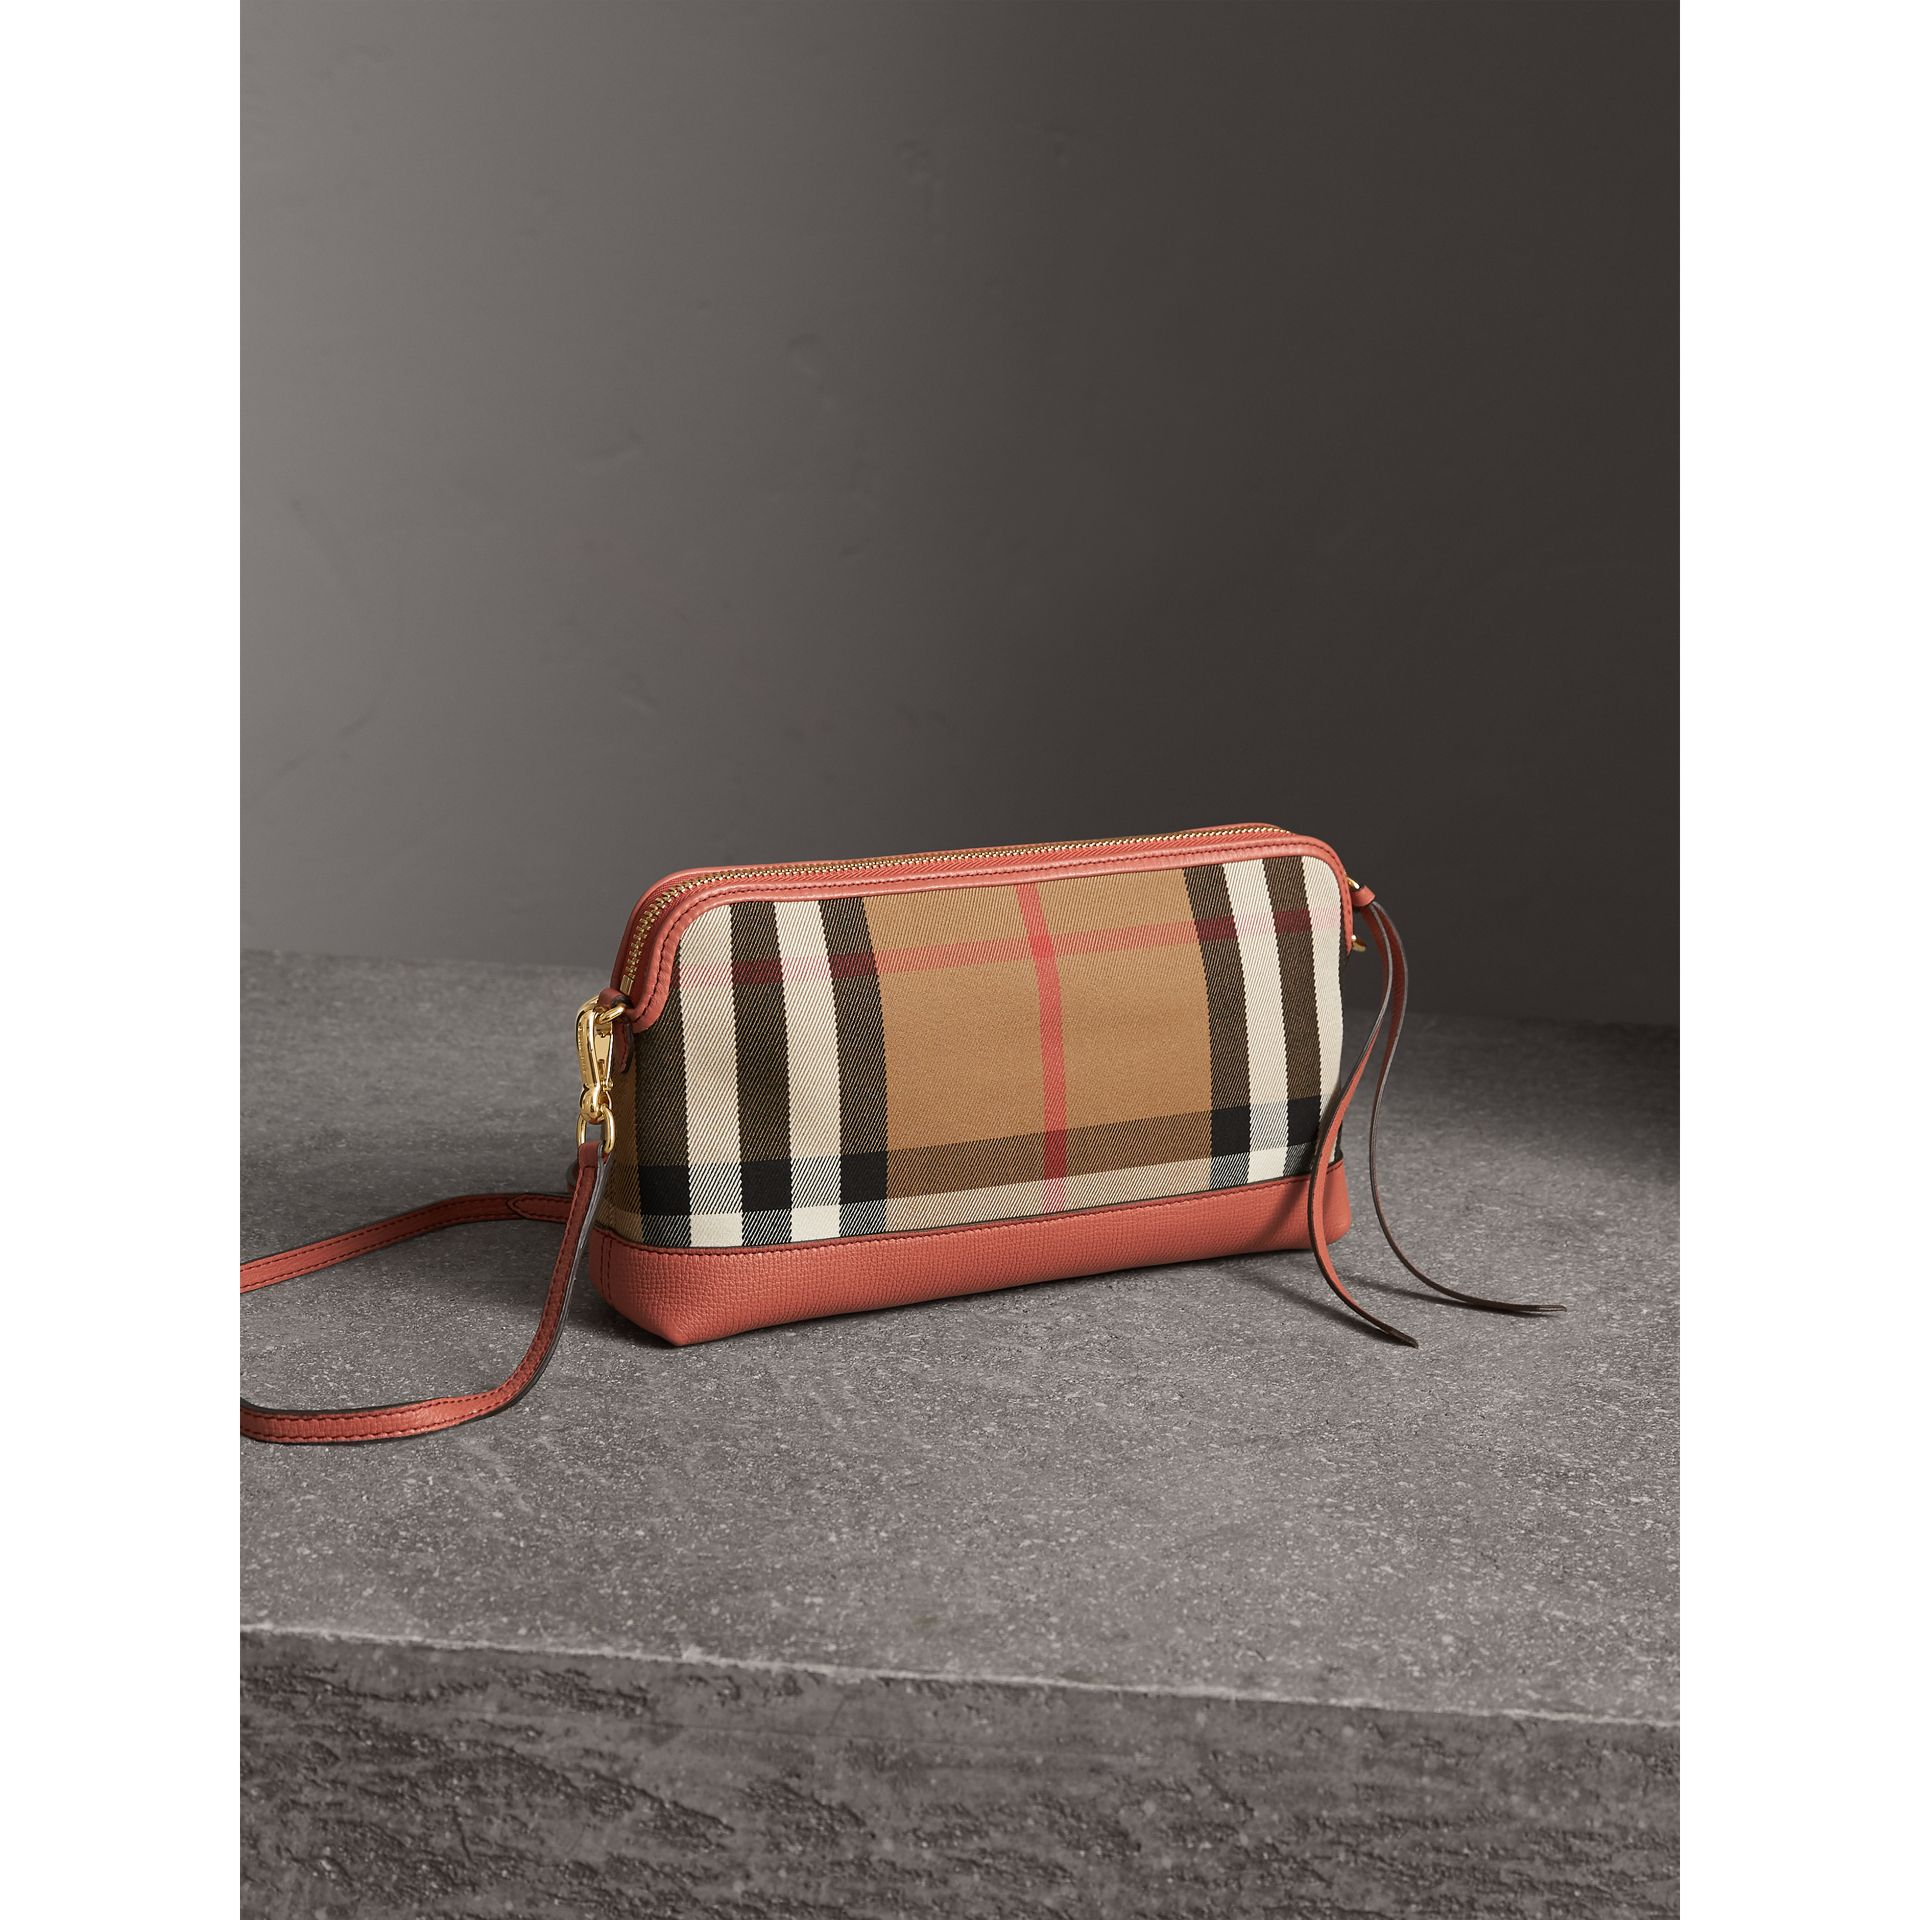 House Check and Leather Clutch Bag in Cinnamon Red - Women | Burberry - gallery image 5